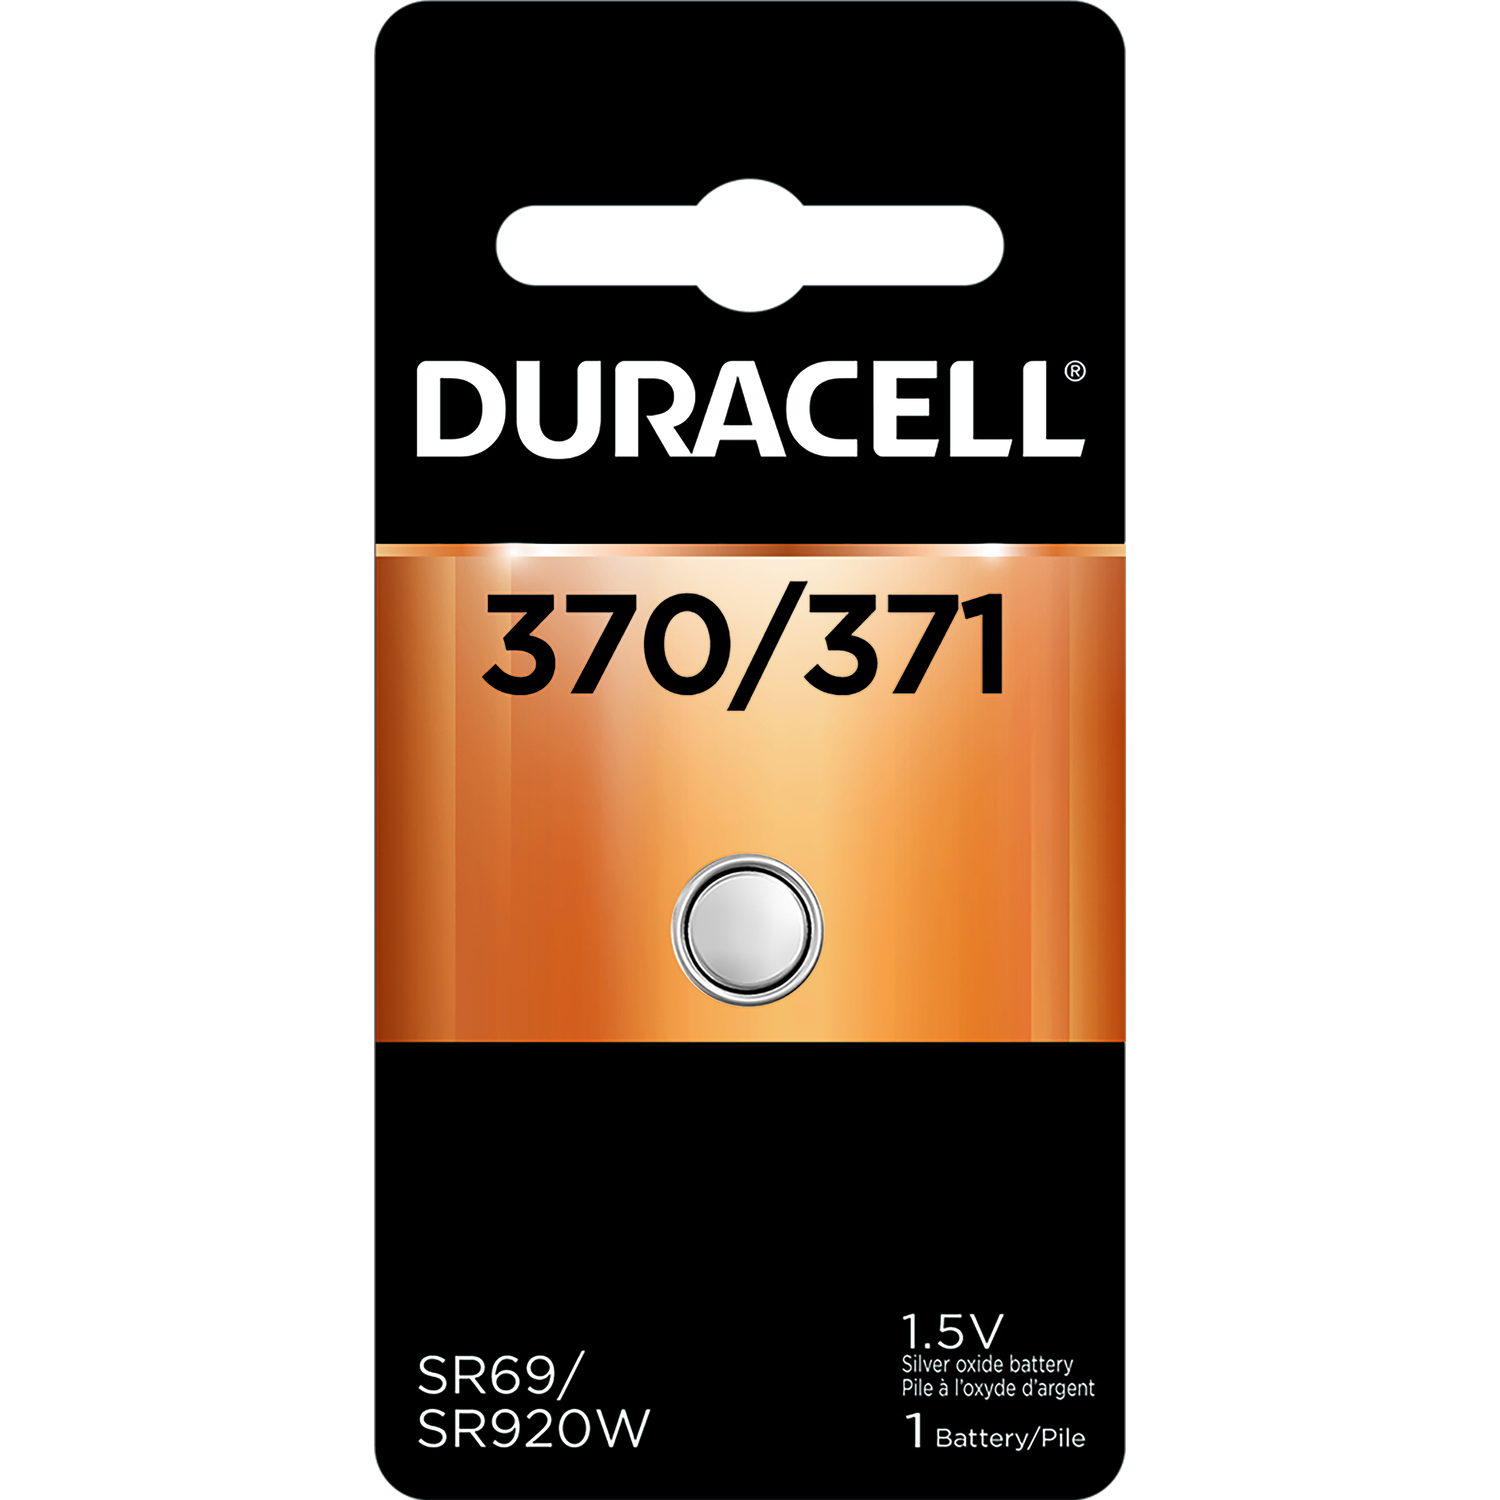 Duracell  370/371  Electronic/Watch Battery  1 pk Silver Oxide